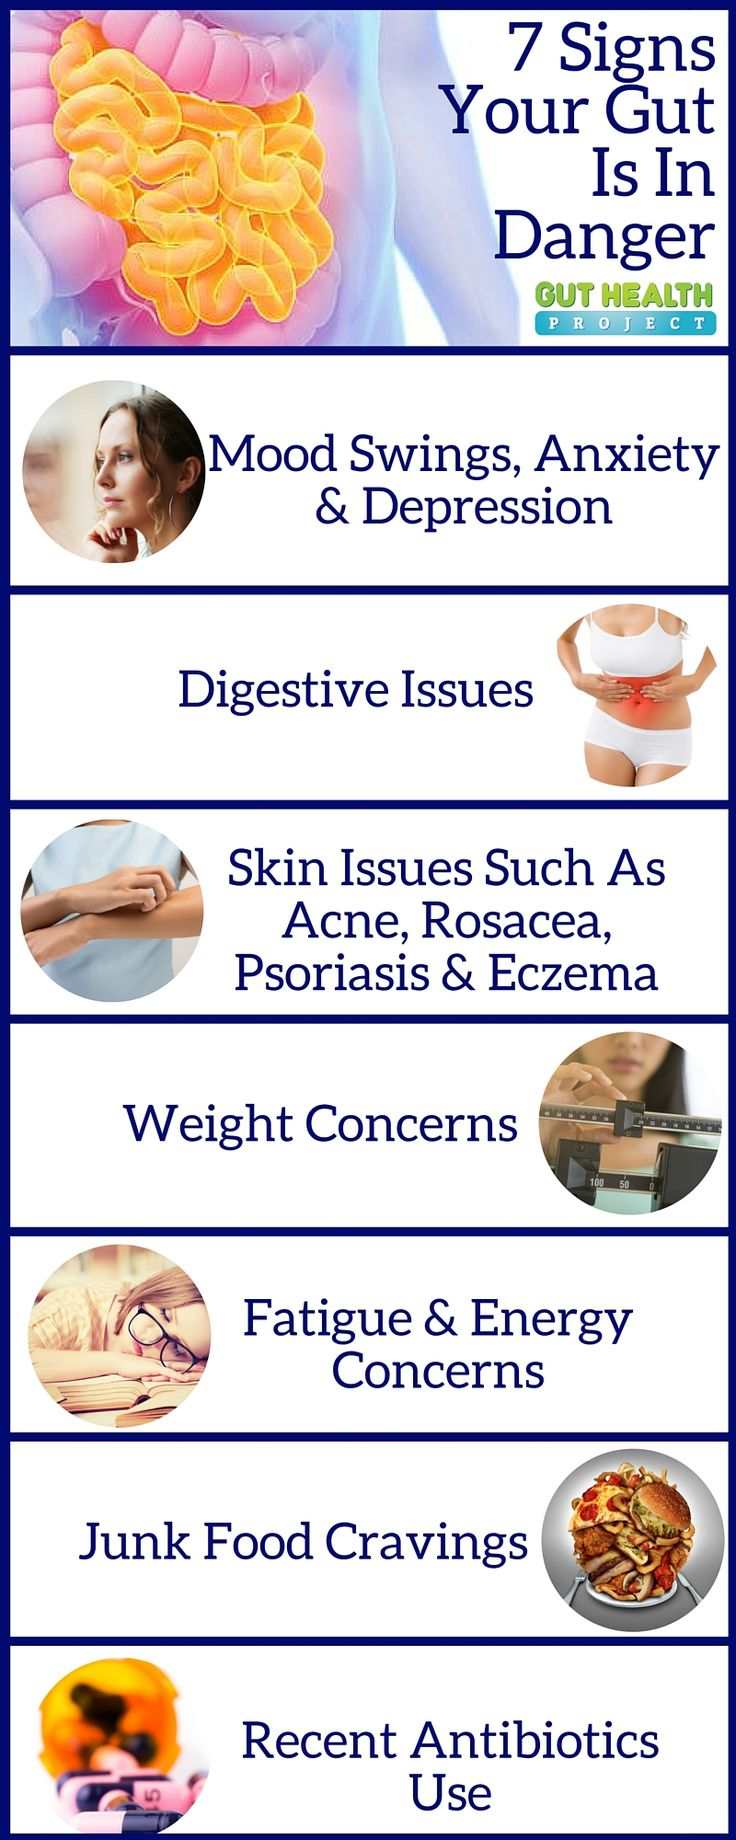 7 Signs Your Gut Is In Serious Danger. Number 7 Will Surprise You   Gut Health   Digestion   Health Infographic   Holistic   http://guthealthproject.com/7-signs-your-gut-is-in-danger/?utm_source=pinterest_ads&utm_medium=womens_health&utm_campaign=7_signs_gut_danger